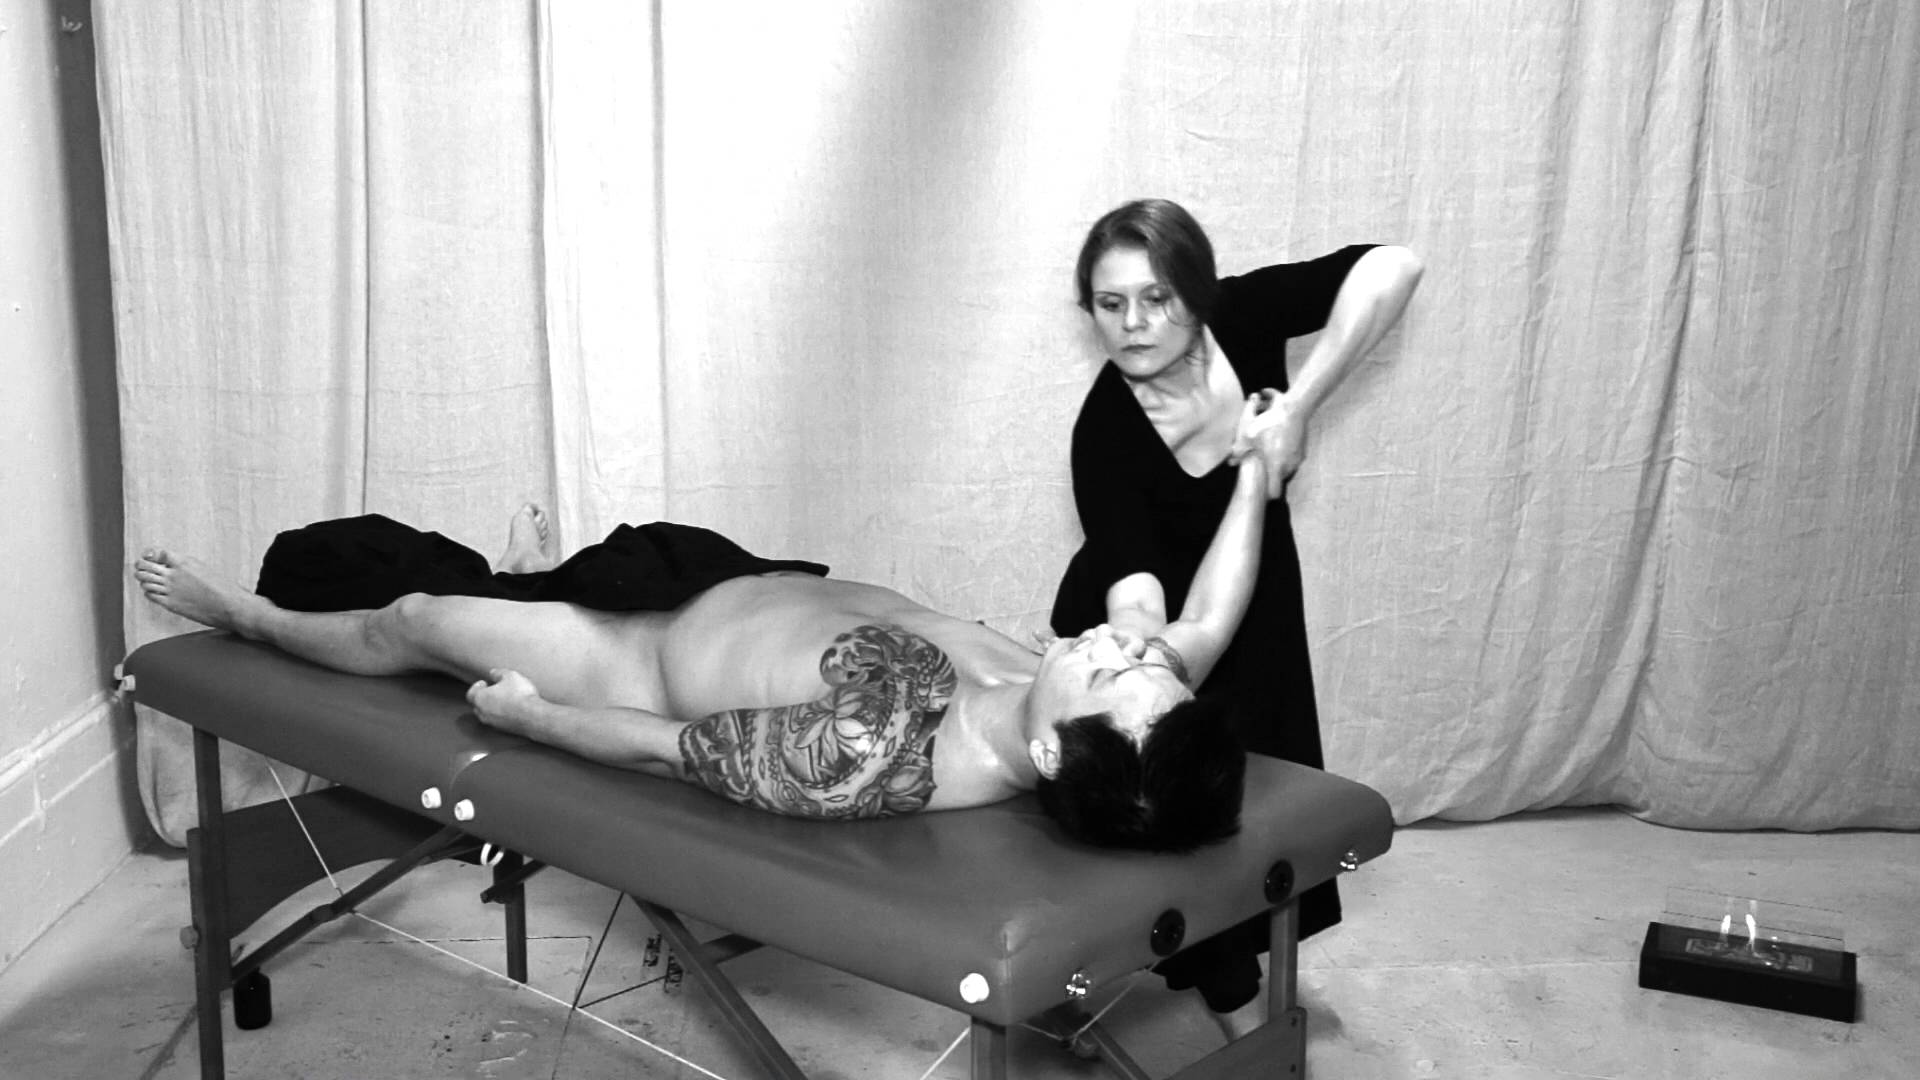 Lomi Lomi massage by Neri in Central London